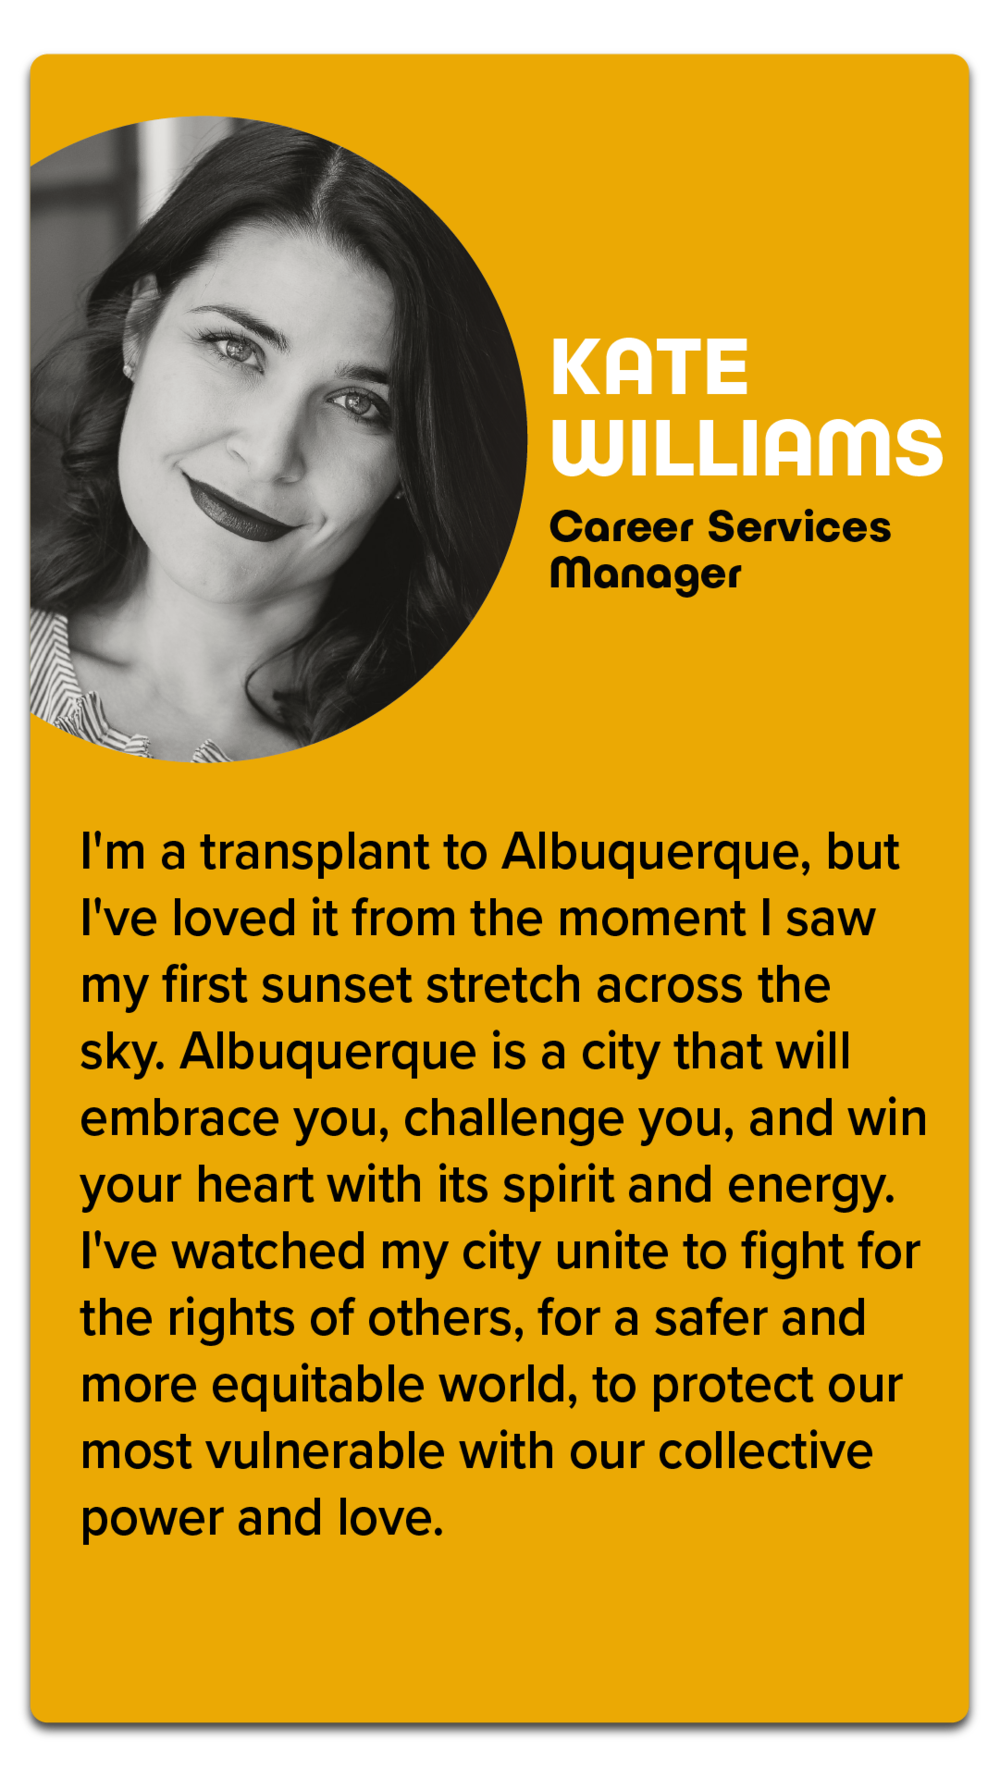 """Kate Williams, Career Services Manager  """"I'm a transplant to Albuquerque, but I've loved it from the moment I saw my first sunset stretch across the sky. Albuquerque is a city that will embrace you, challenge you, and win your heart with its spirit and energy. I've watched my city unite to fight for the rights of others, for a safer and more equitable world, to protect our most vulnerable with our collective power and love."""""""